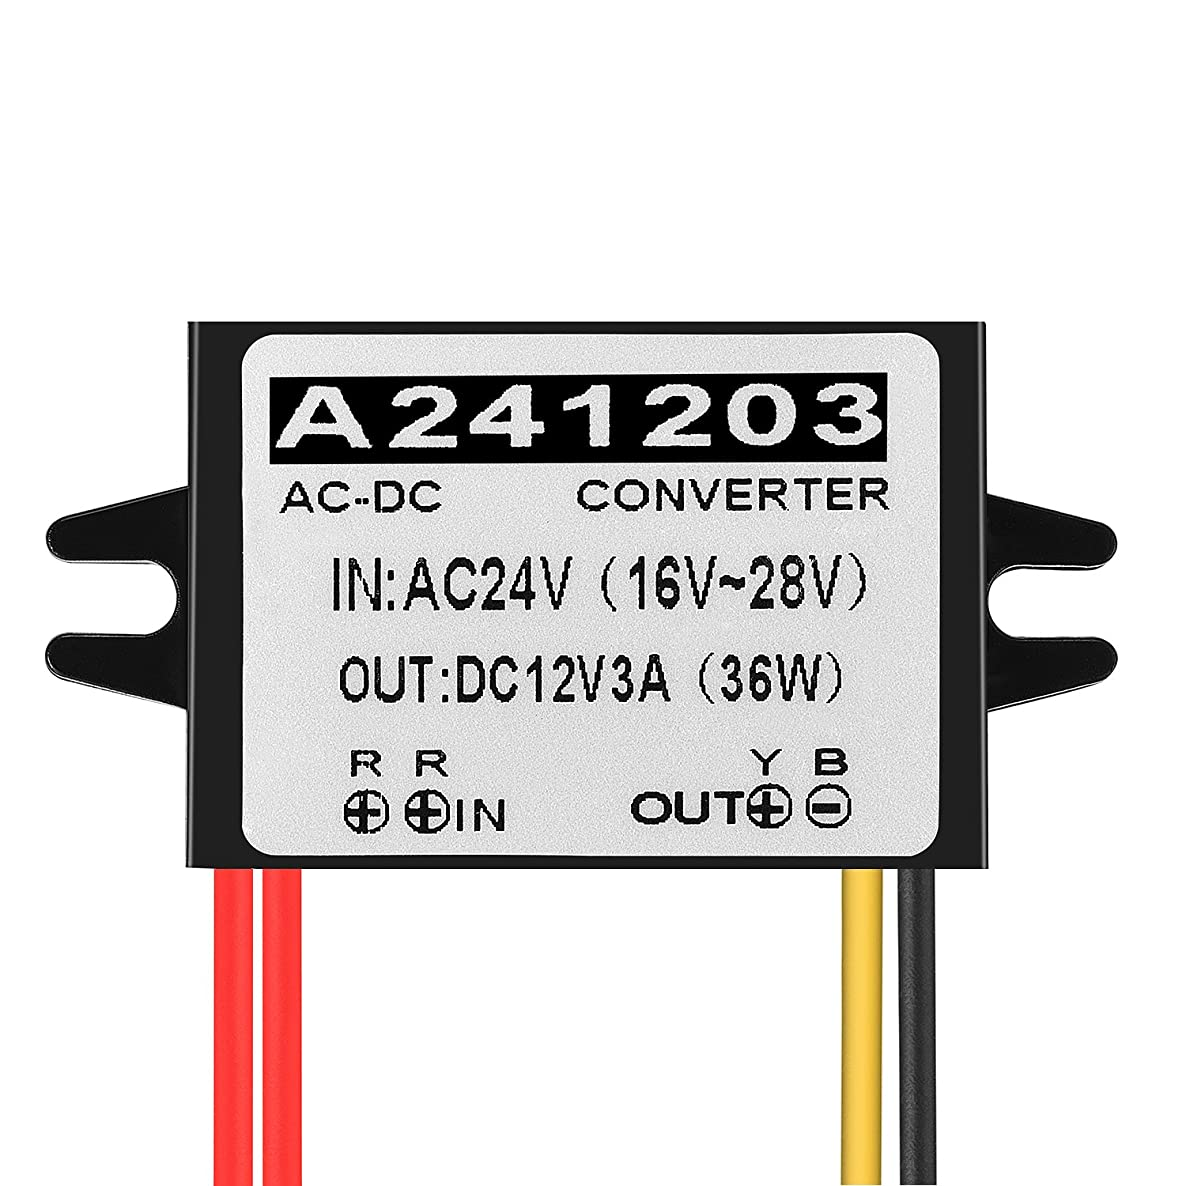 Aweking Waterproof AC/DC AC24V to DC12V 3A 36W Voltage Converter Regulator Transformer Power Supply for Car Truck Vehicle CE Listed